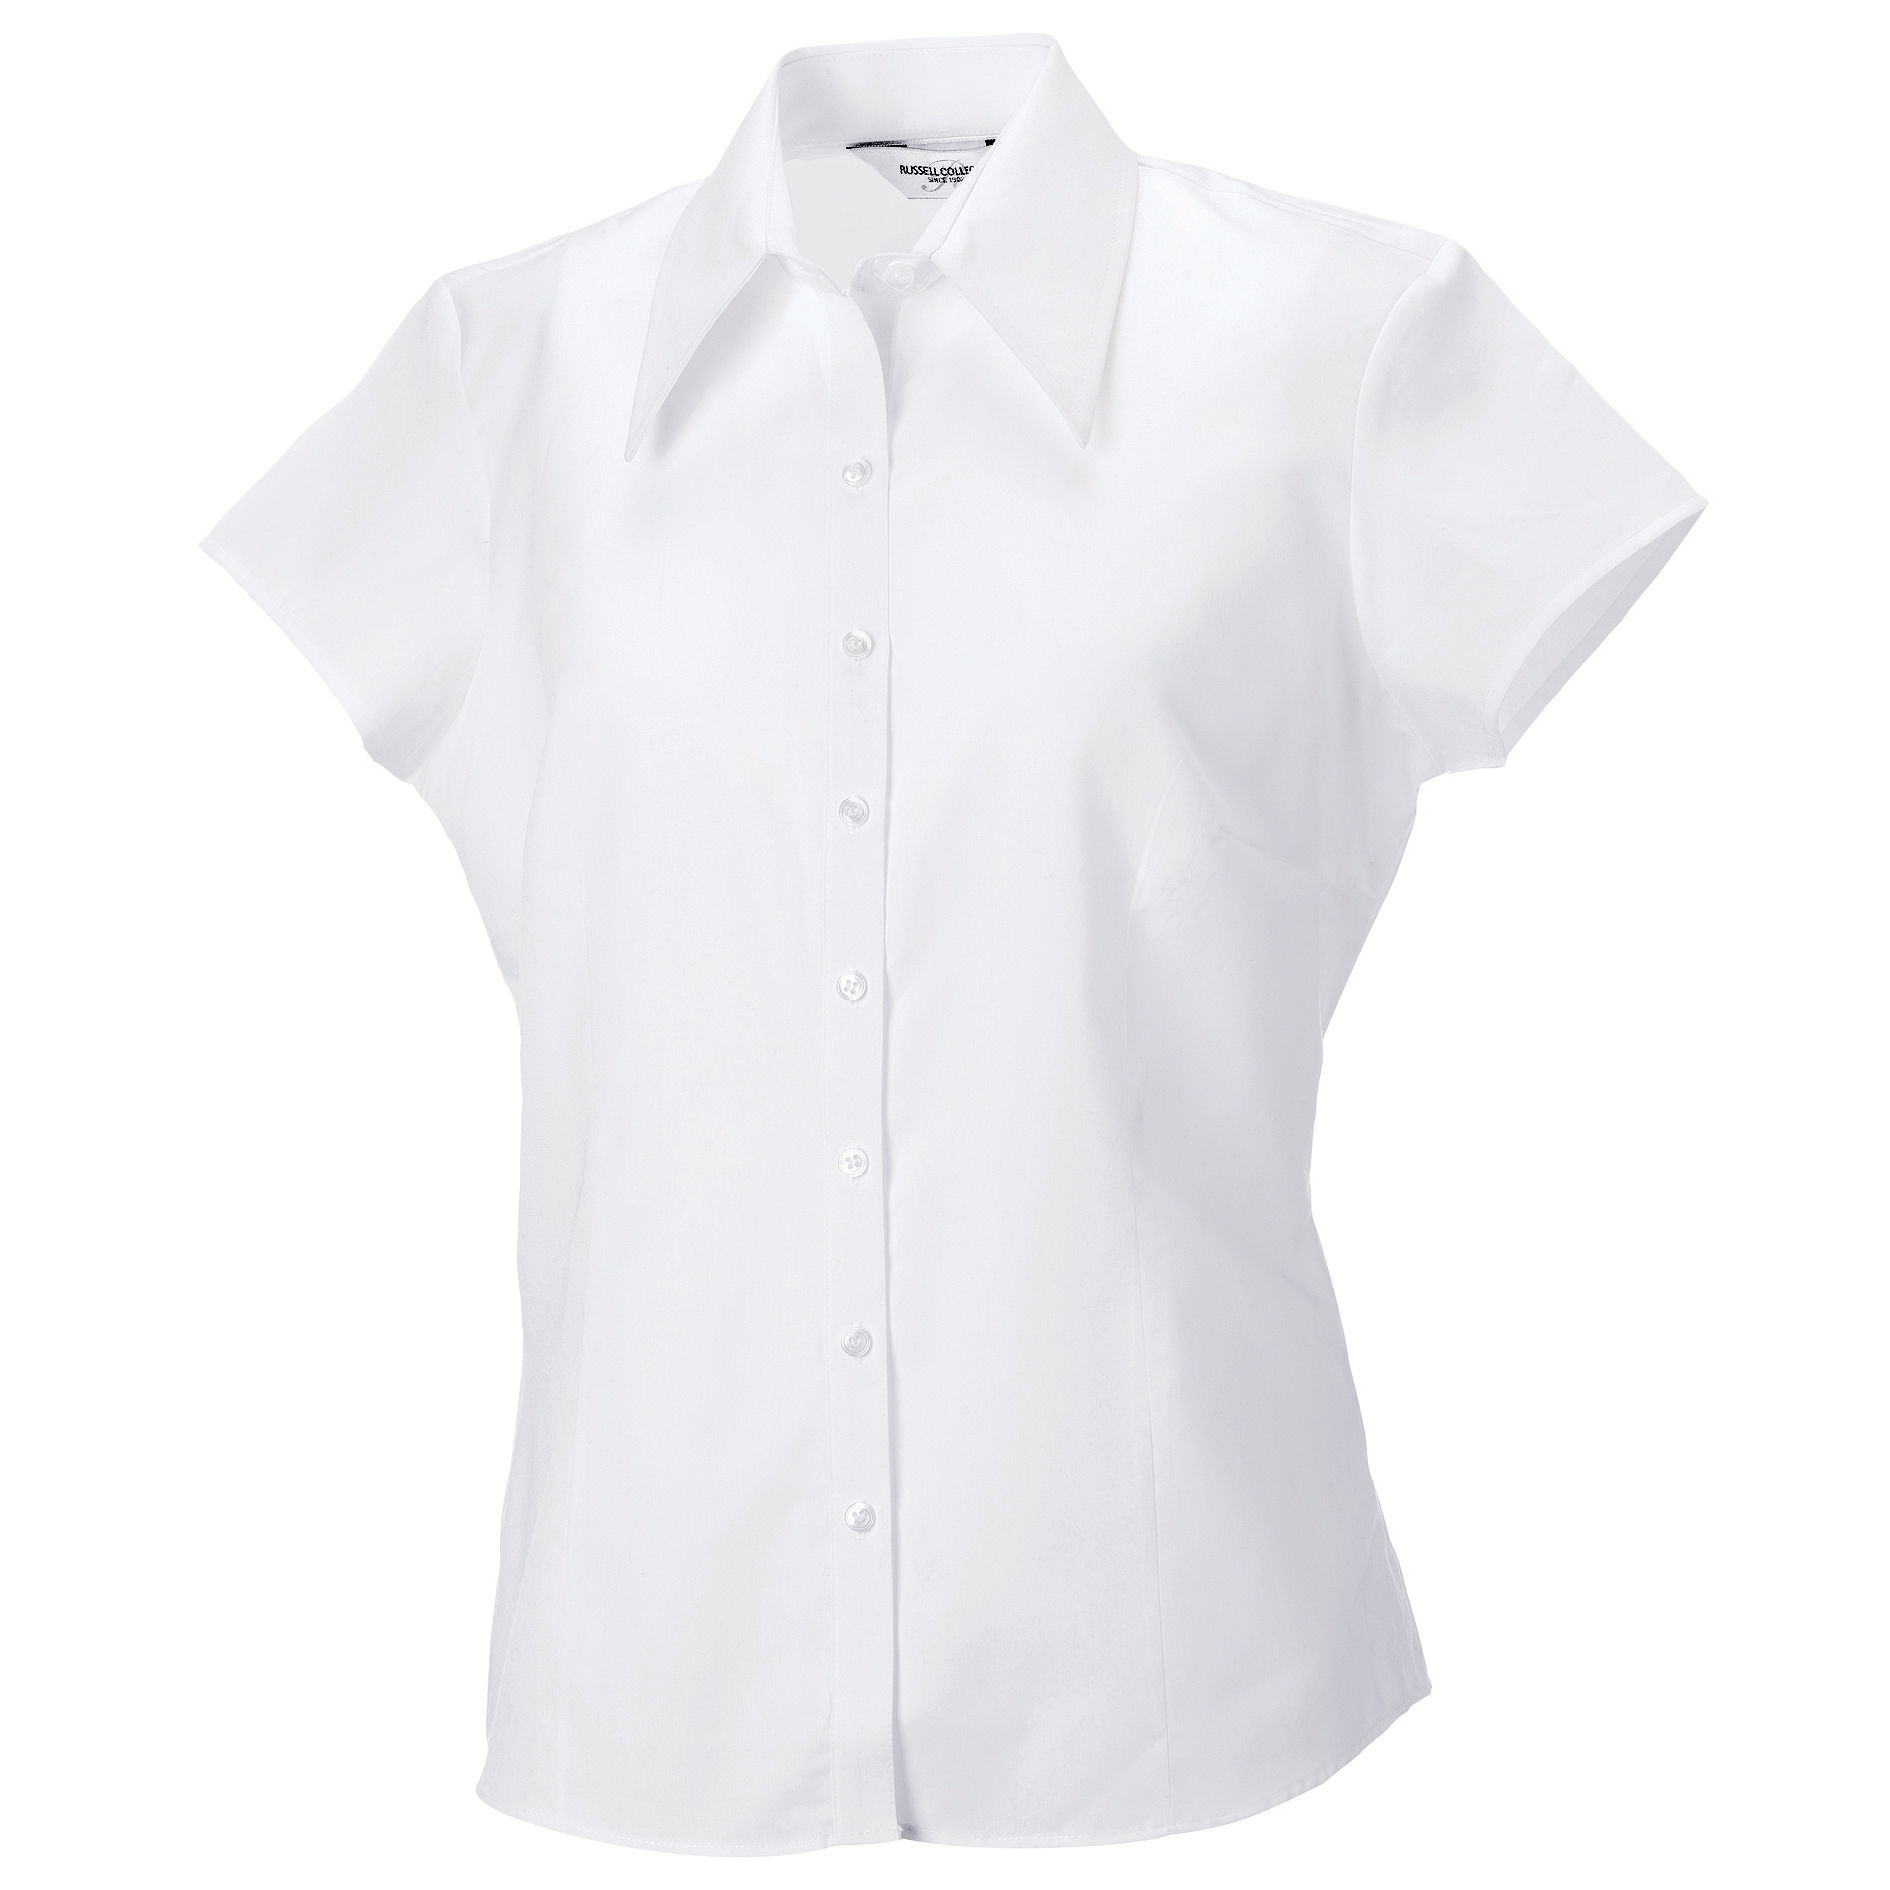 Hugo Boss Polo Shirt Parlay Fit In Pima Cotton Regular Fit Parlay Contrast Woven Collar 433b5a